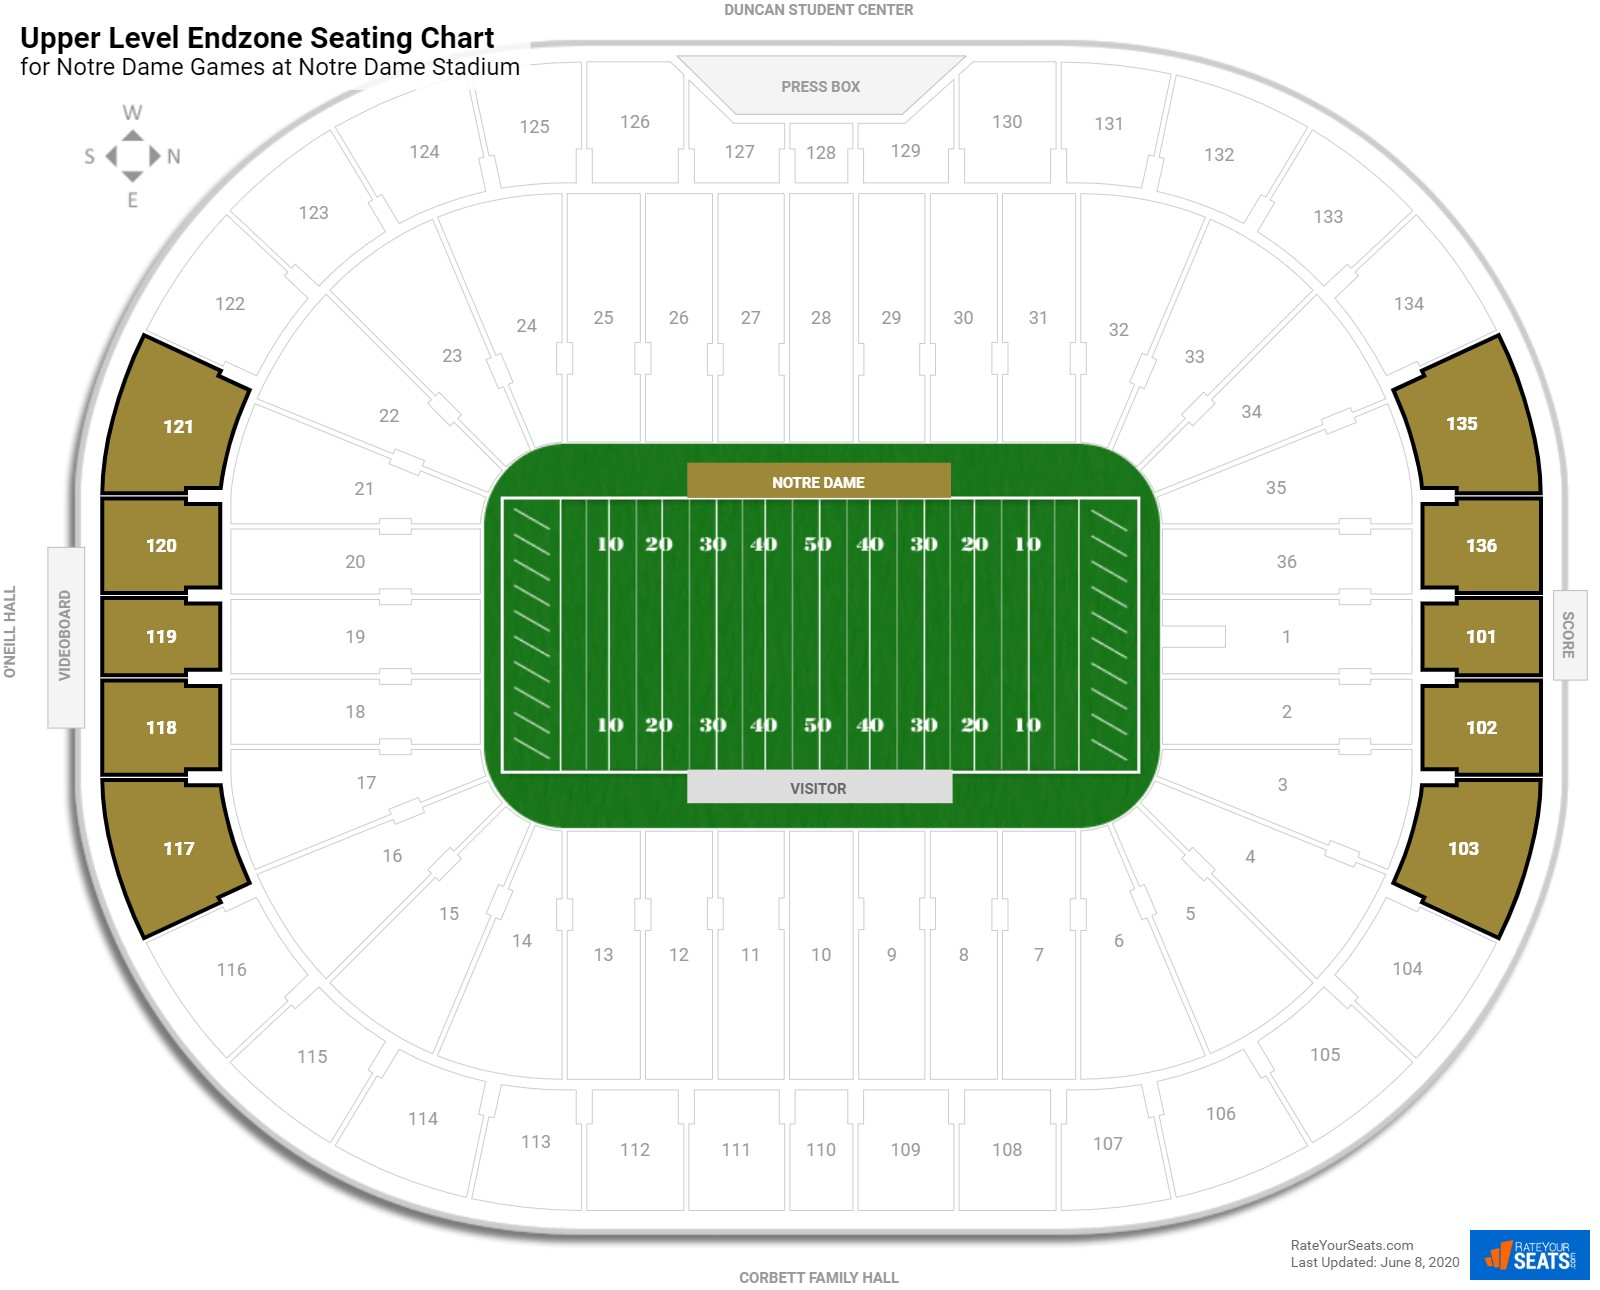 Notre Dame Stadium Upper Level Endzone seating chart